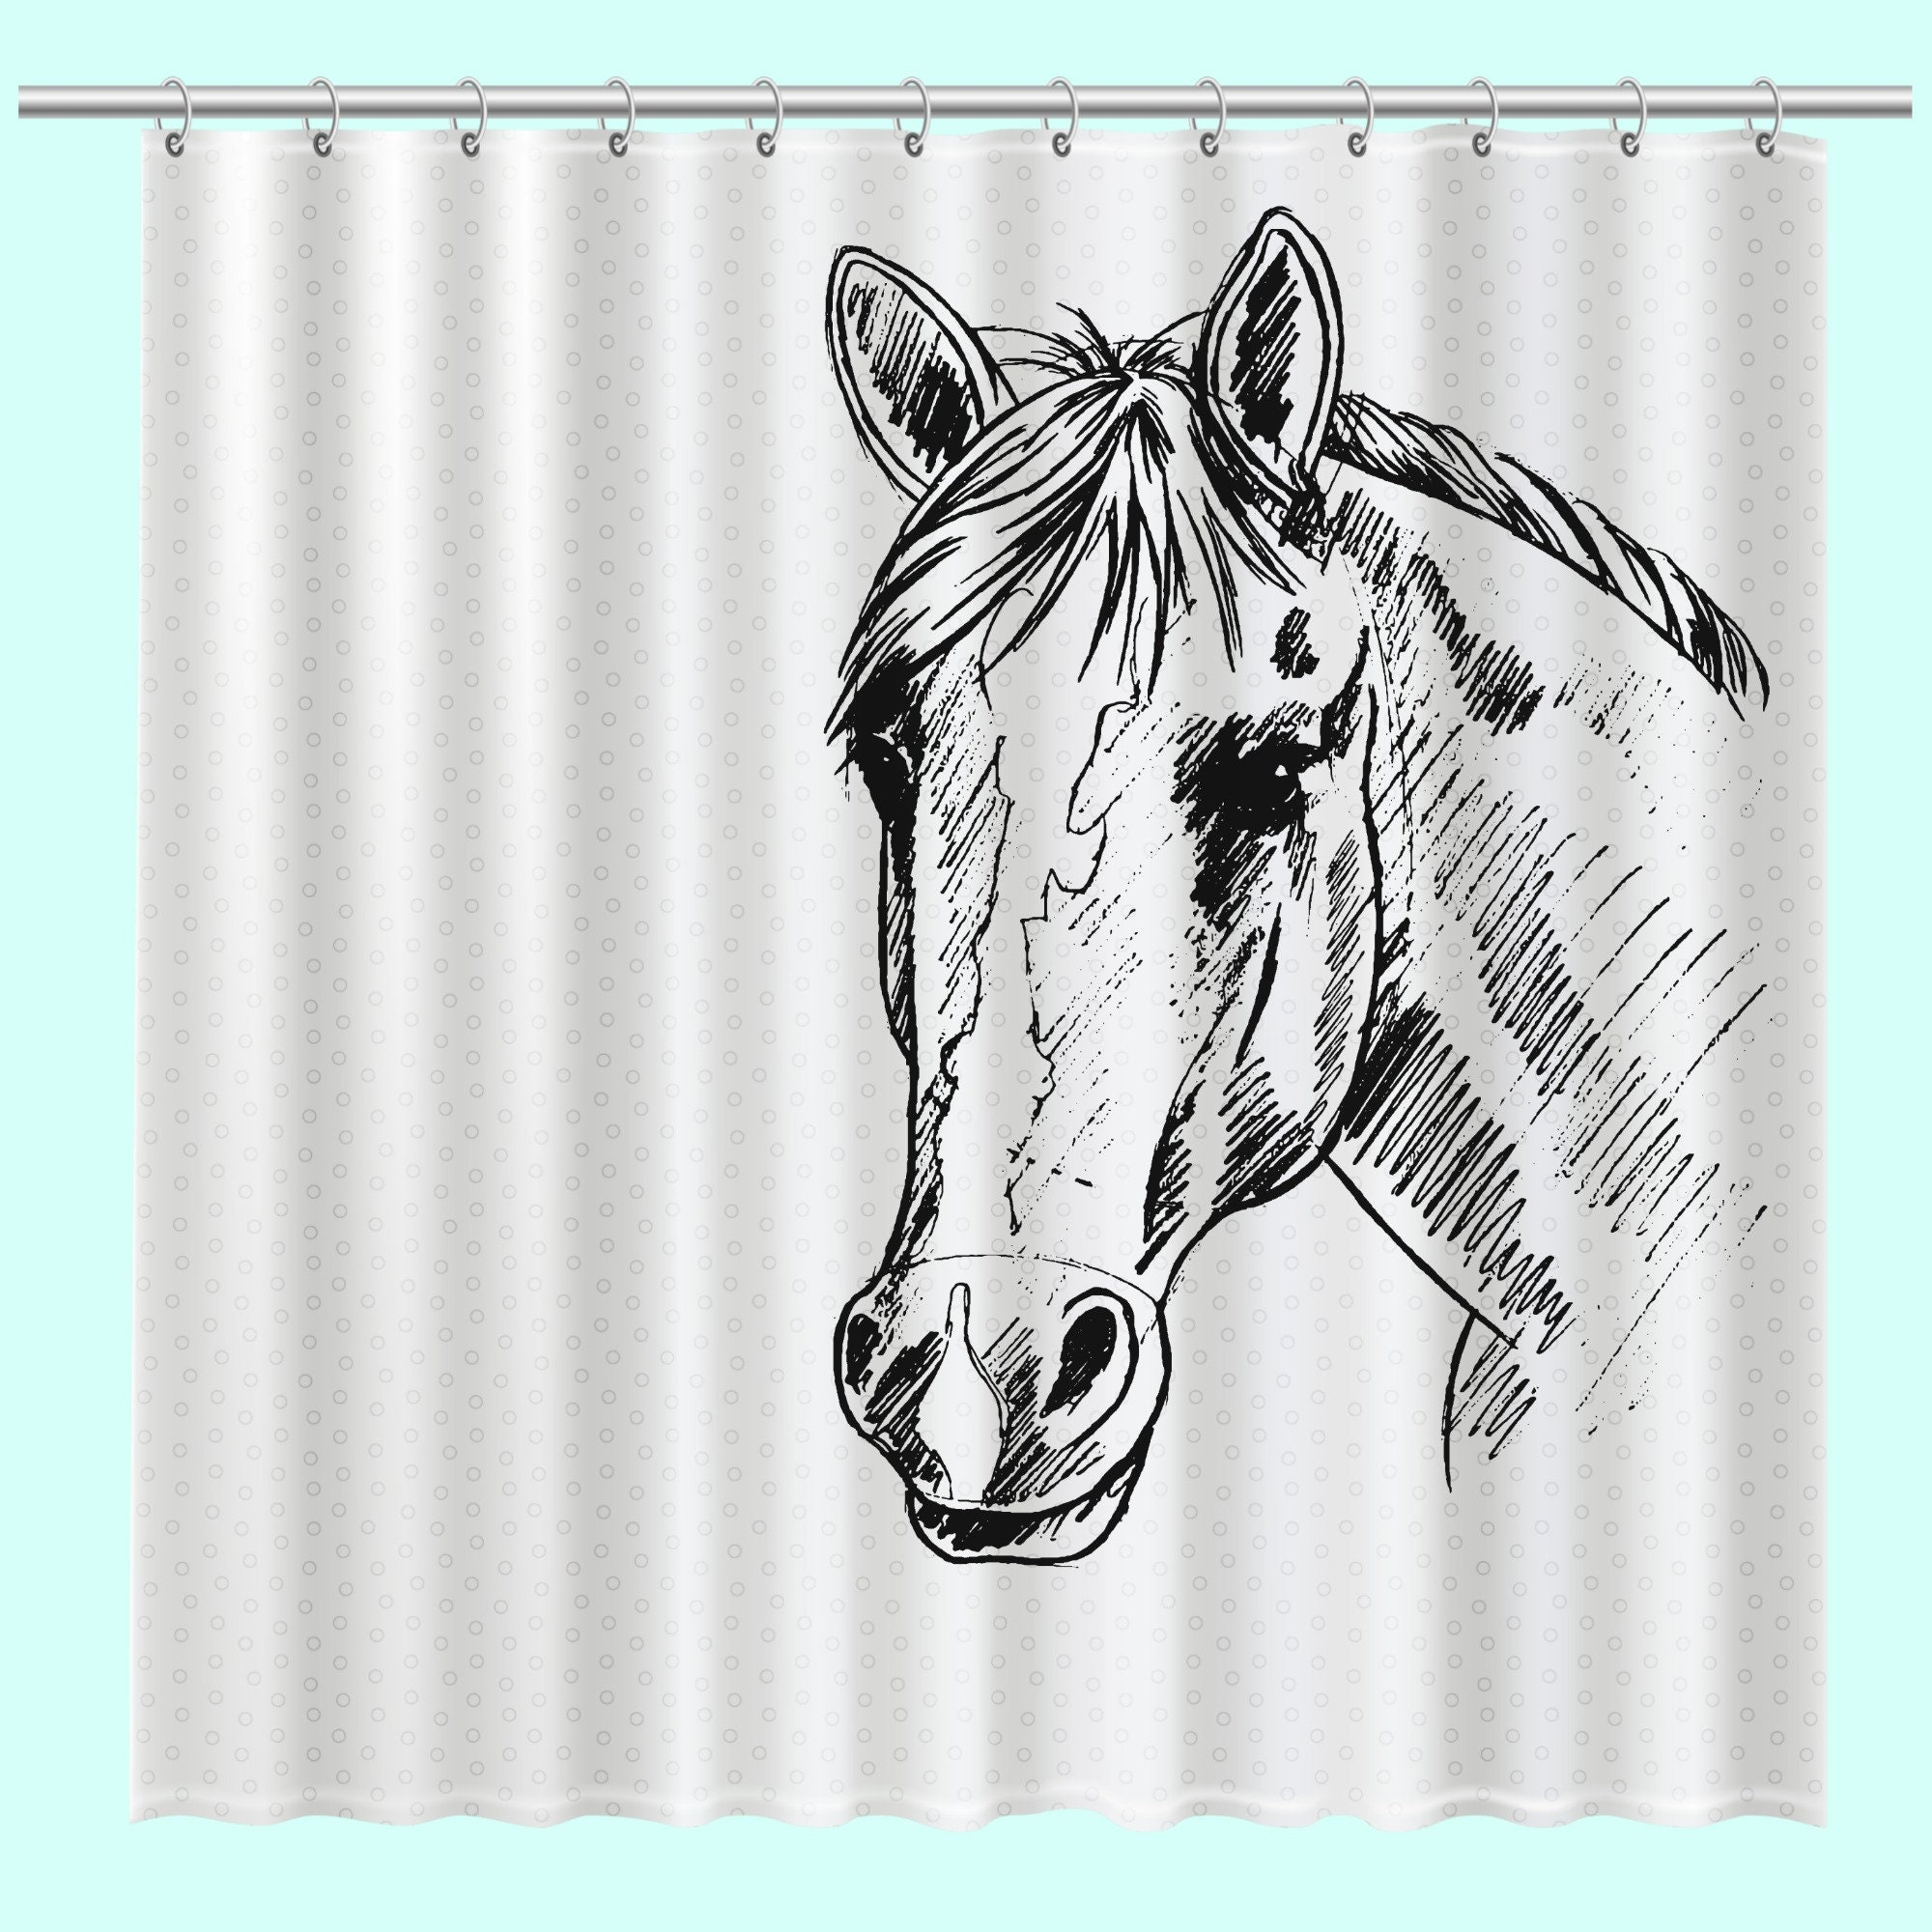 Horse Shower Curtain Bath Decor Lover Gift Home 71 X 74 Free Shipping Unique